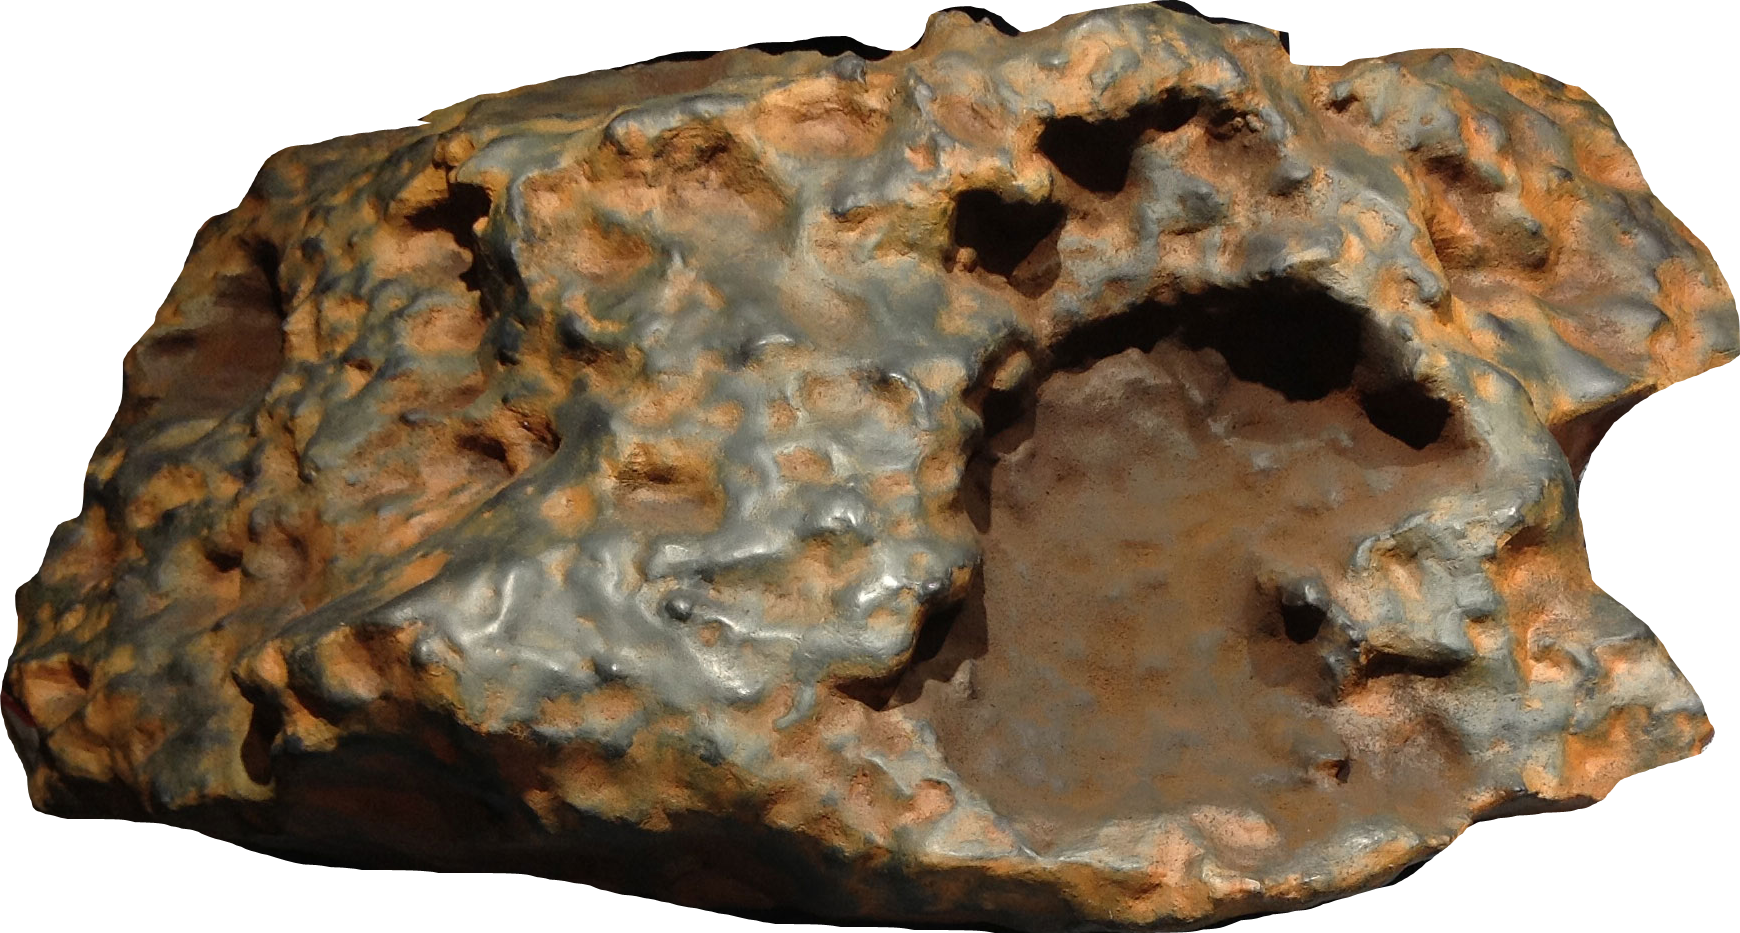 Download 3D Print File for 'Block Island' Meteorite. This is a color image of the 3D model of the Block Island meteorite, which is about the size of a microwave oven. The meteorite is oddly shaped and is a dark brown color with some touches of dark orange. The right side of the meteorite has a chunk missing and has a darker, smoother surface.